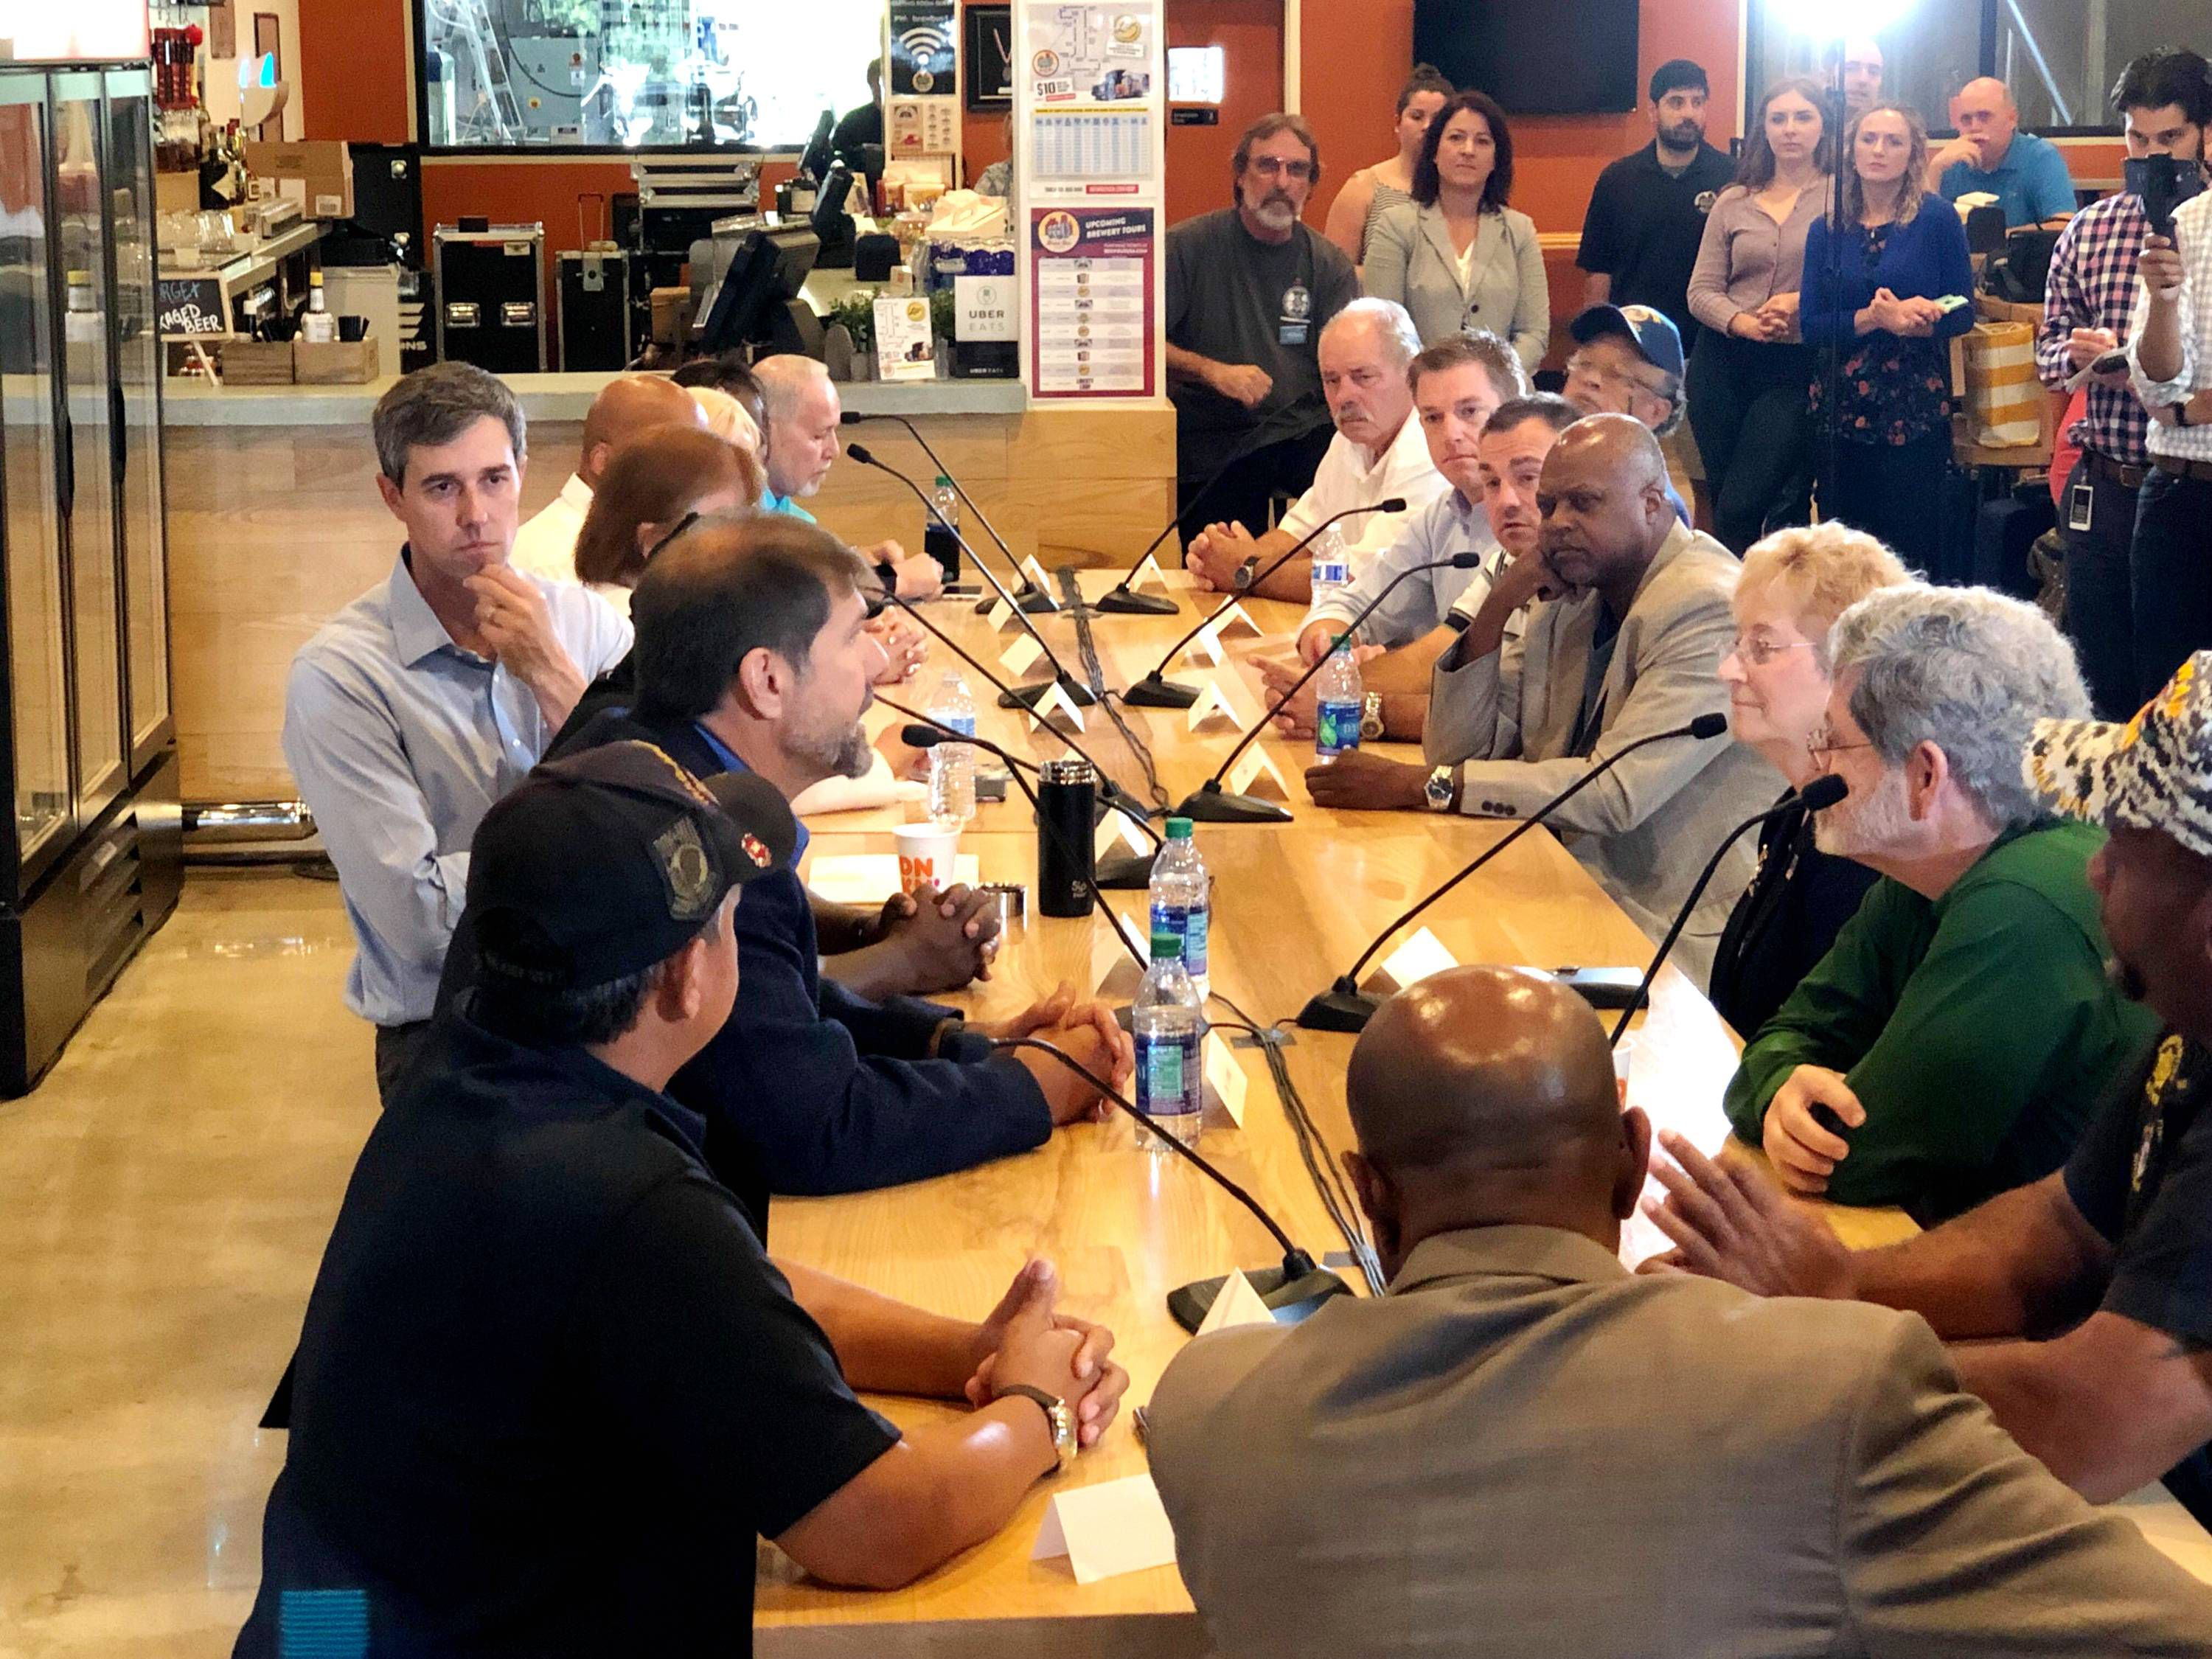 Democratic presidential candidate Beto O'Rourke holds a veterans roundtable in Tampa, Florida, on June 24, 2019.